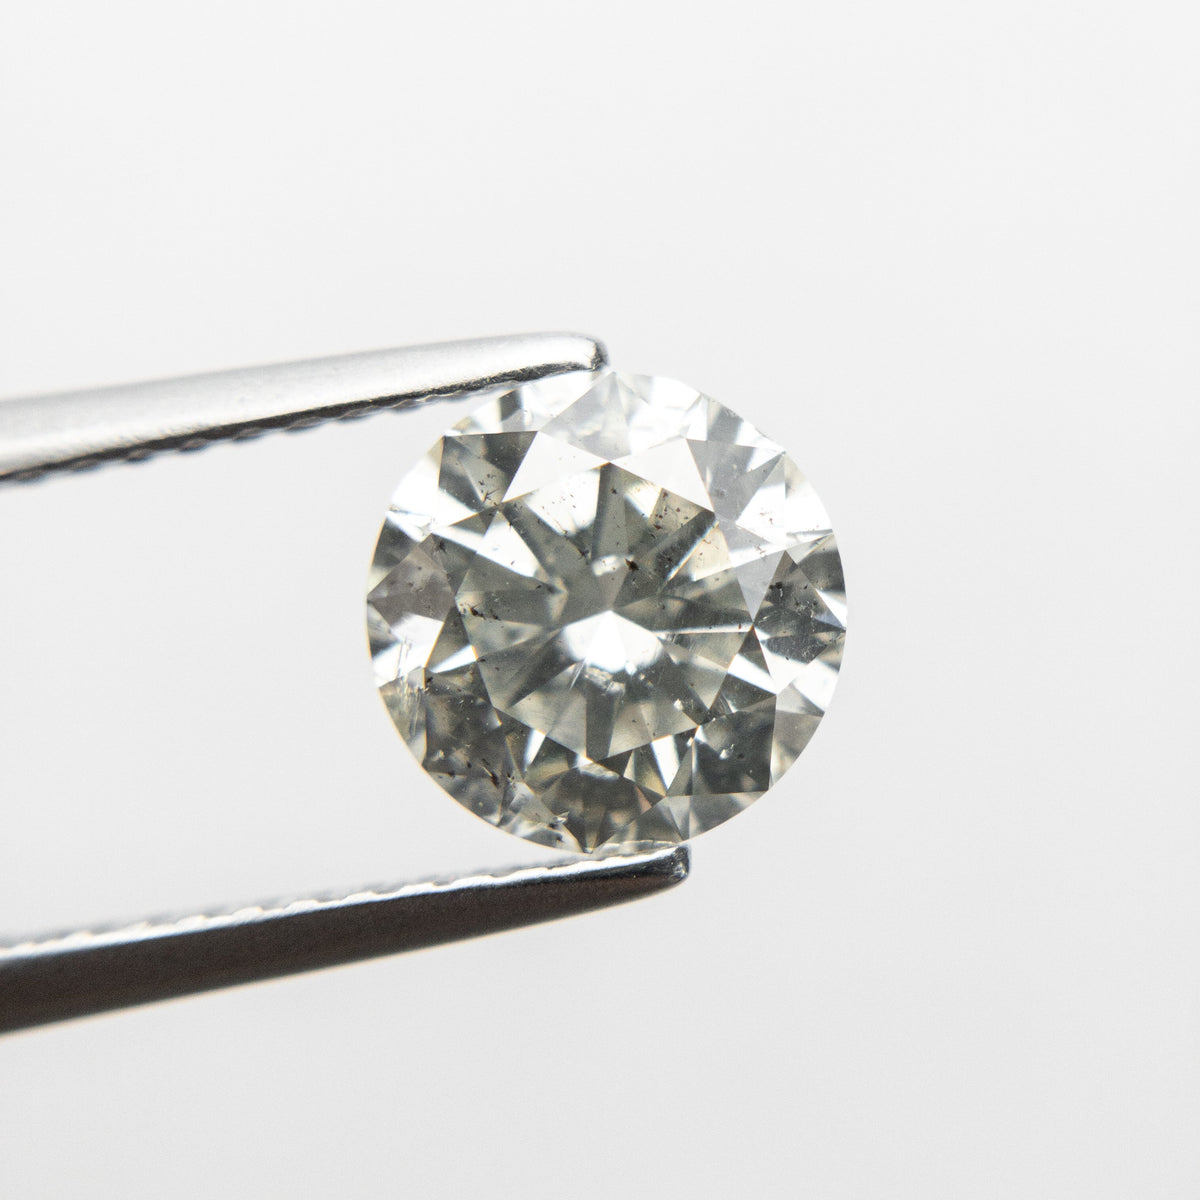 1.57ct 7.41x7.35x4.58mm GIA I1 J Round Brilliant 18692-01